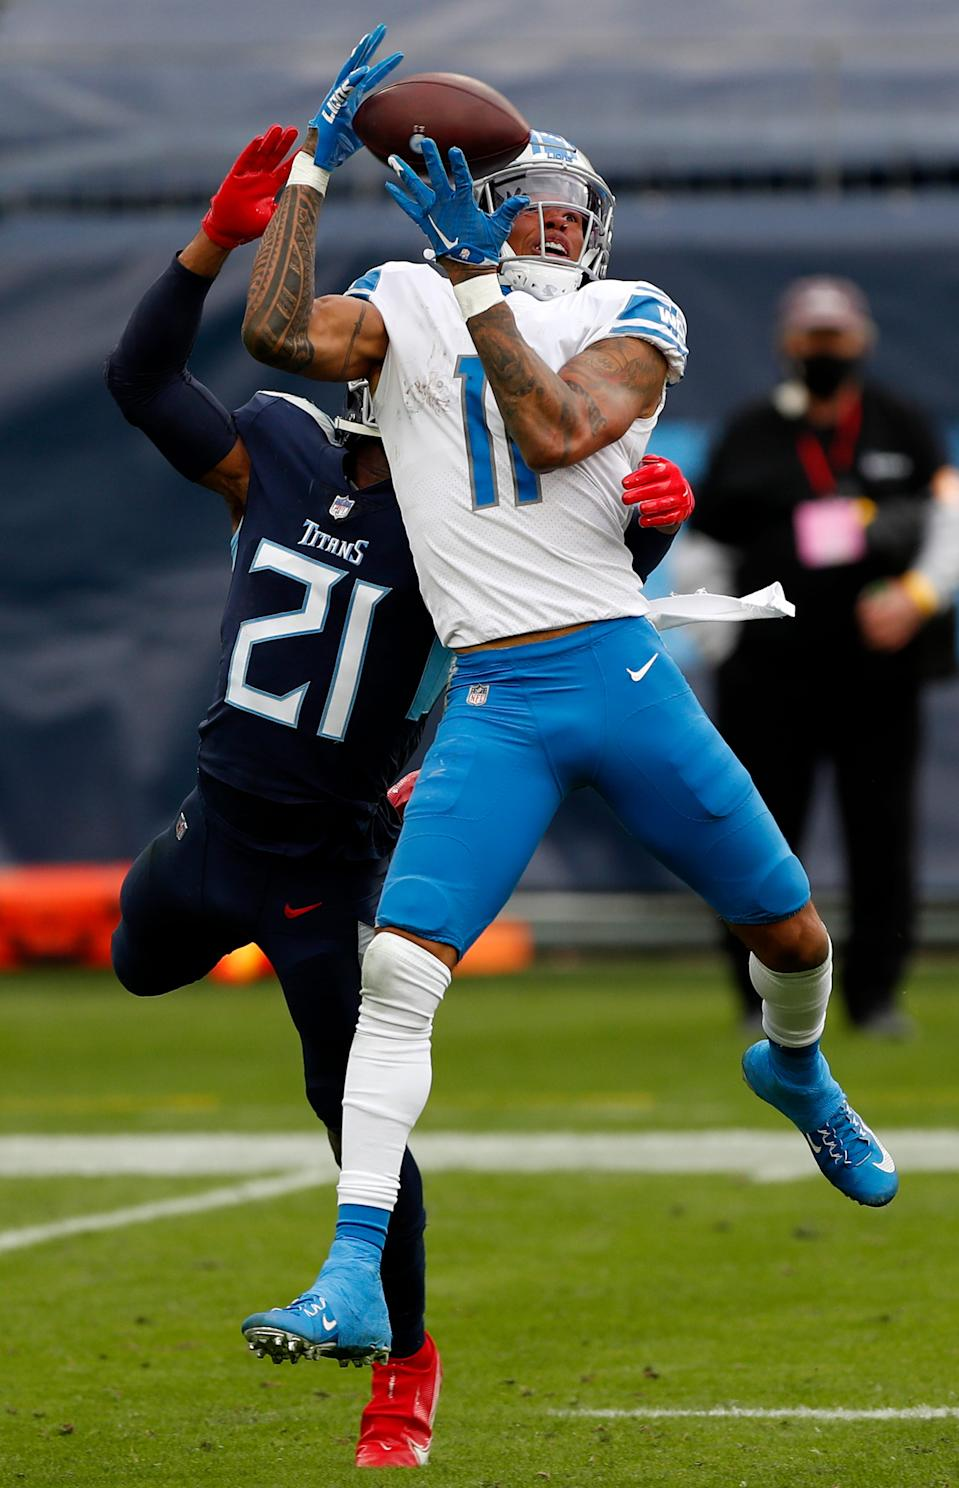 Wide receiver Marvin Jones (11) of the Detroit Lions makes a reception over cornerback Malcolm Butler (21) of the Tennessee Titans during the second quarter of the game at Nissan Stadium on Dec. 20, 2020 in Nashville, Tennessee.